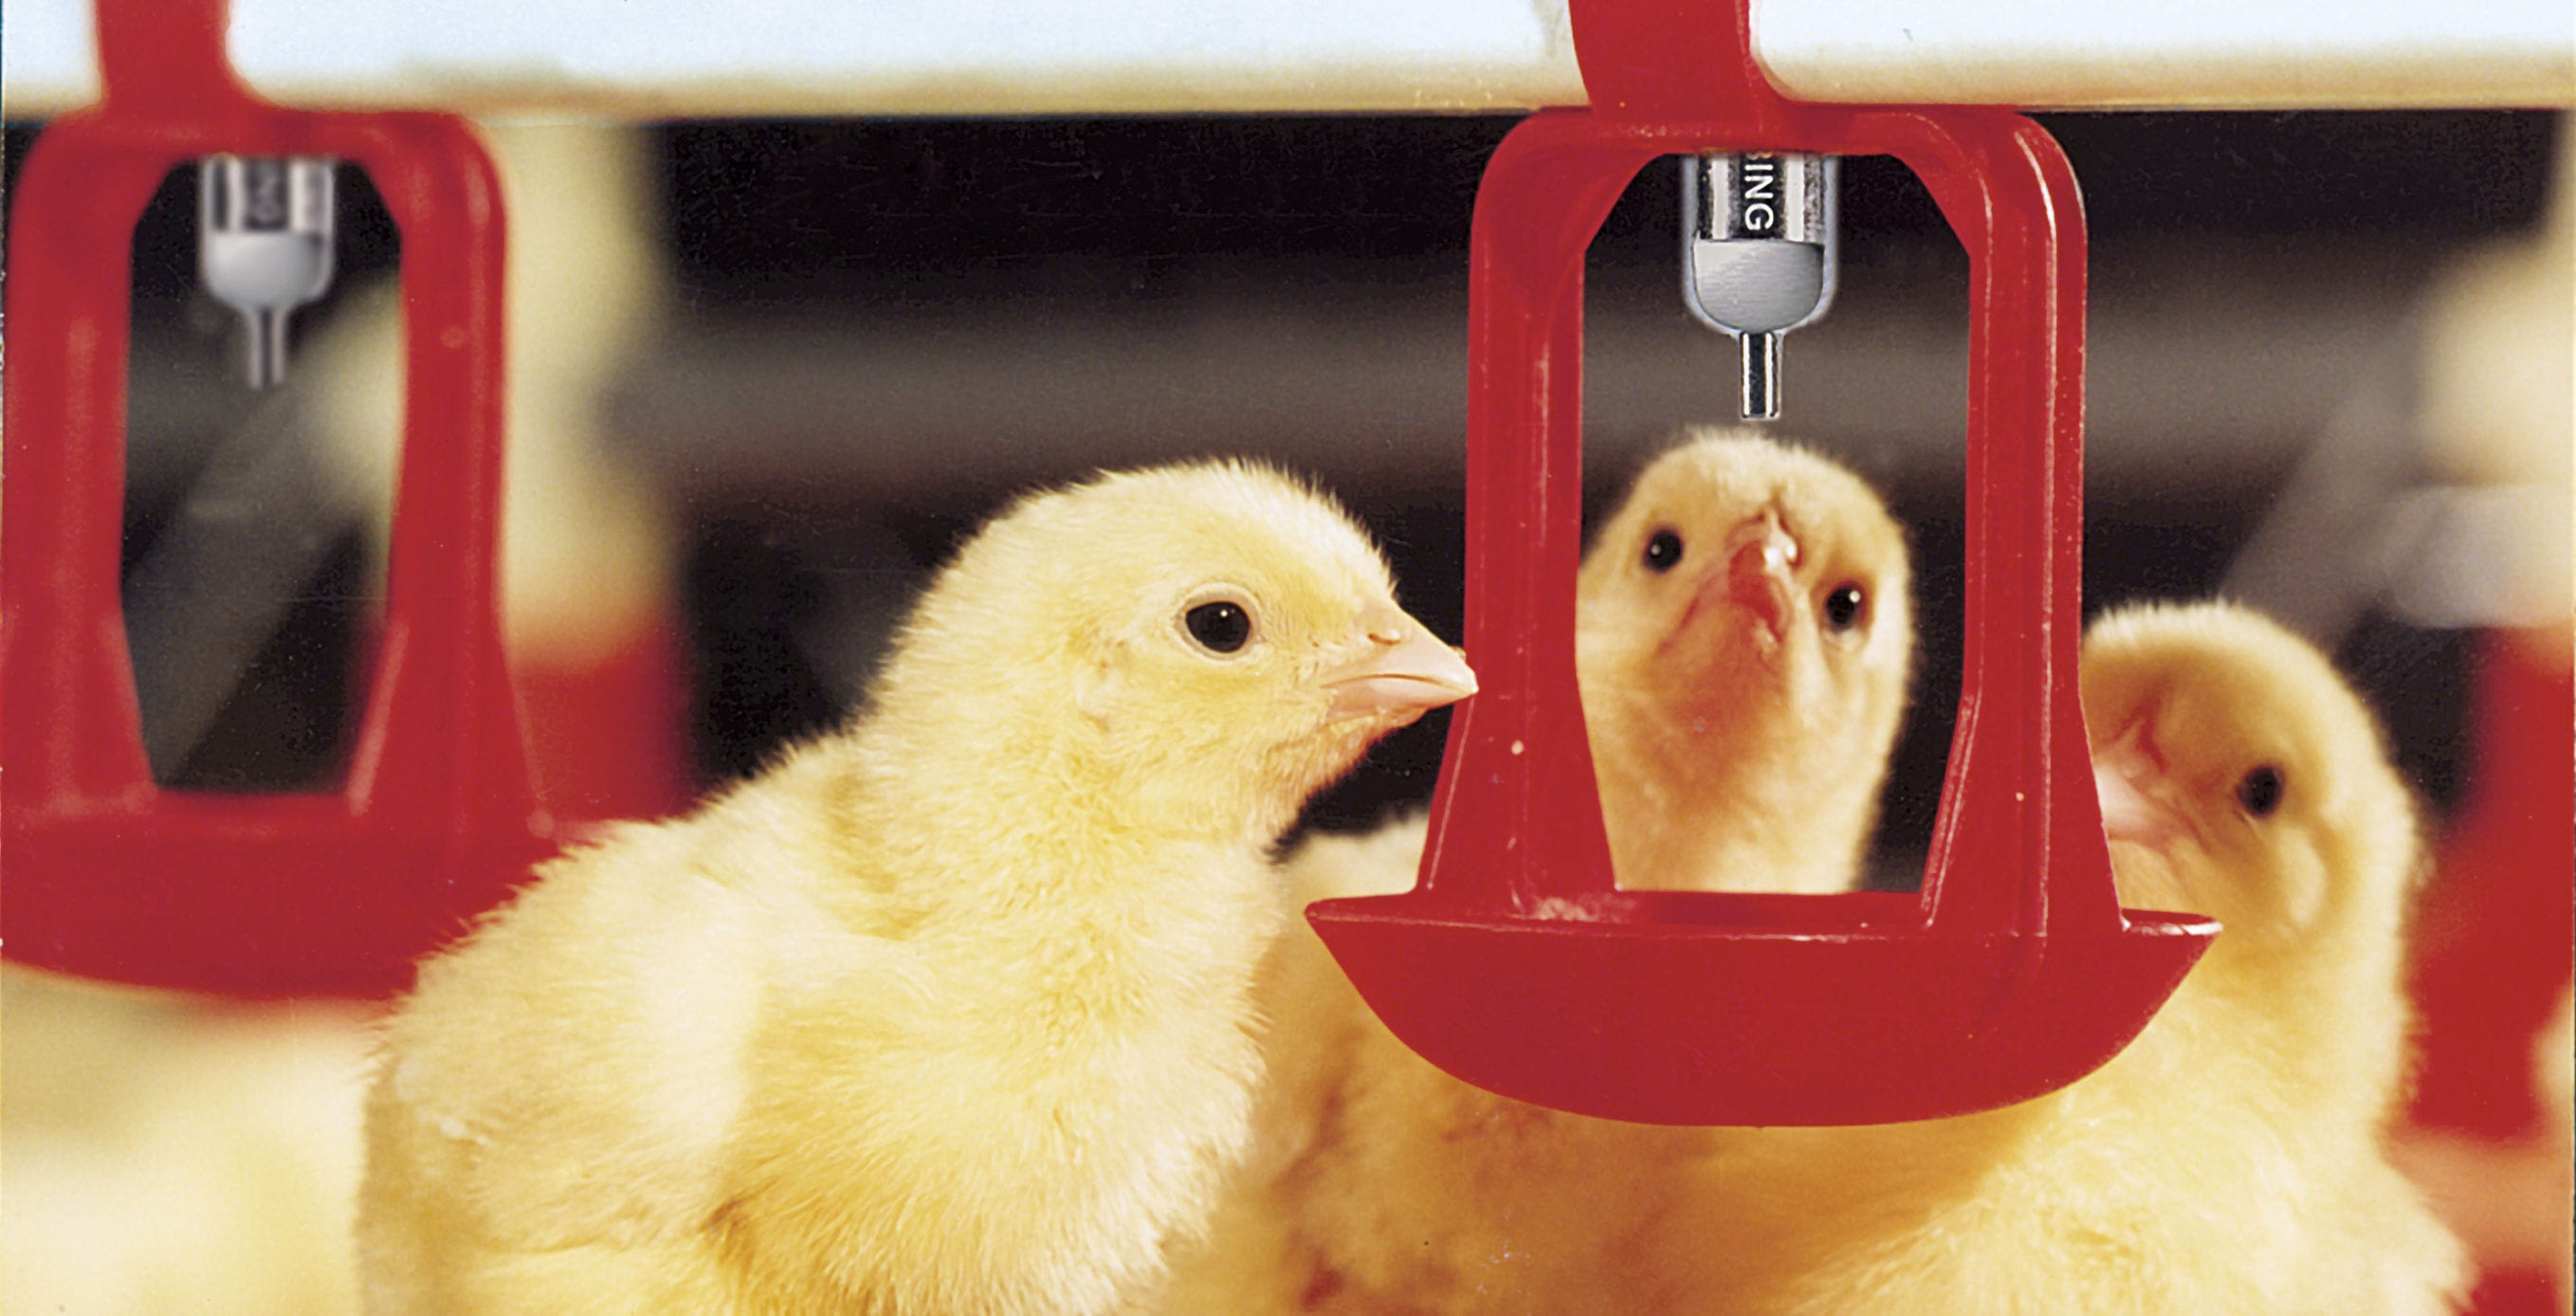 Poultry waterer / bowl / plastic / with nipple drinker - O